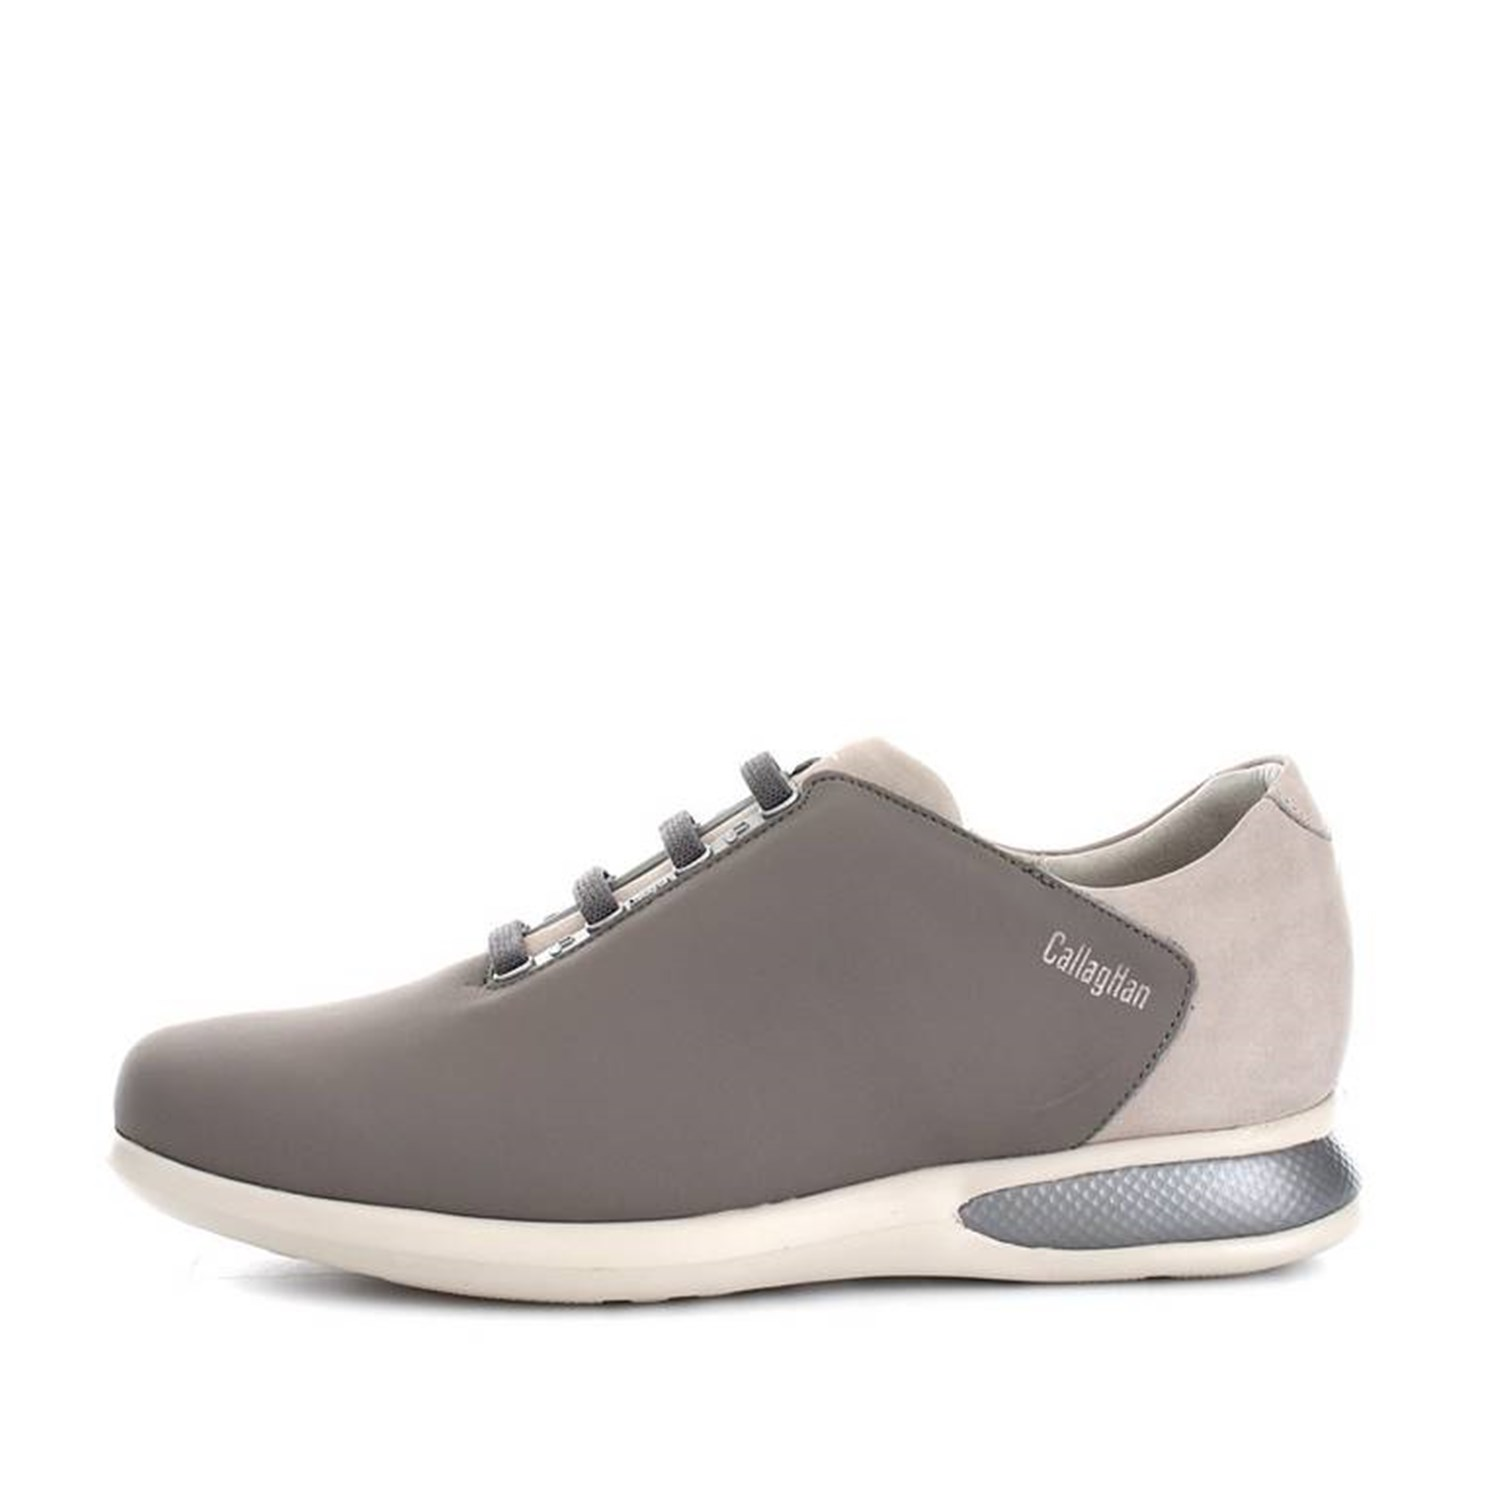 Callaghan Shoes Man low GREY 11900